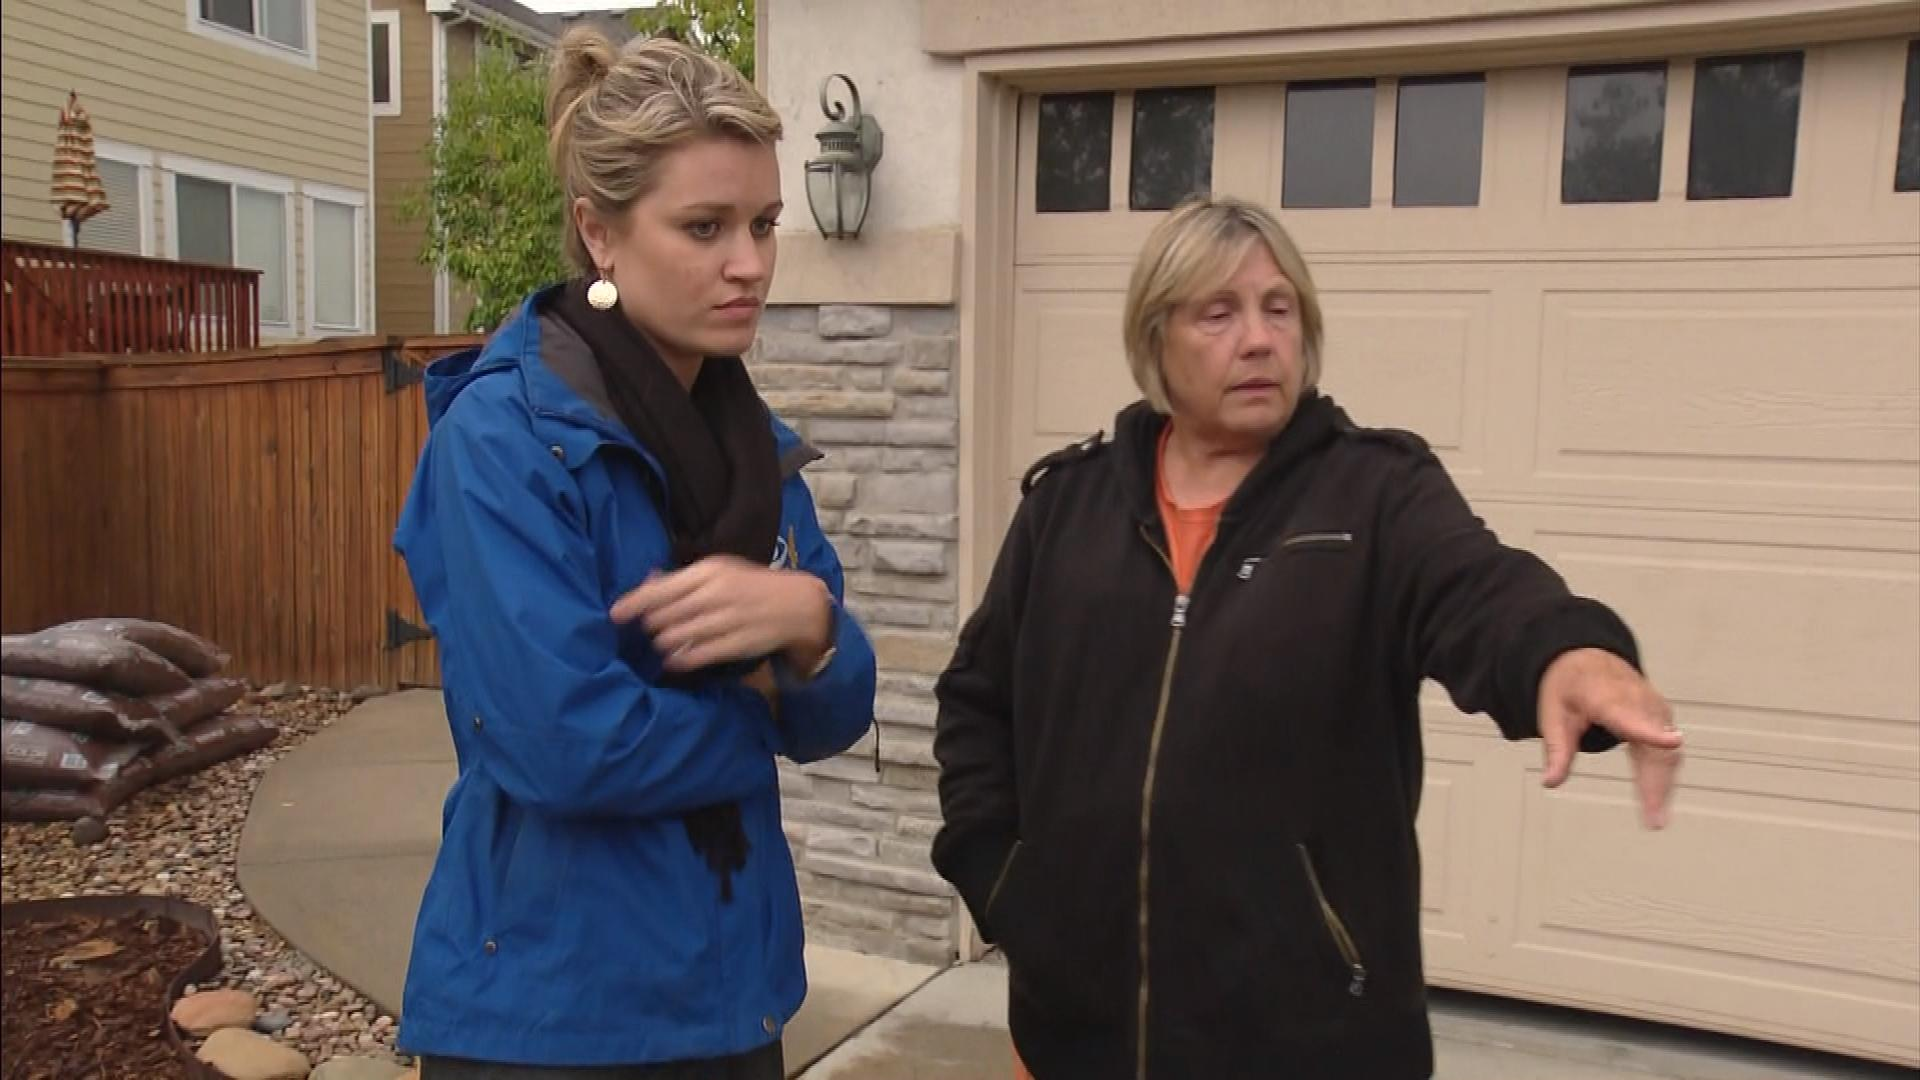 Dorothy Morton shows CBS4's Kelly Werthmann where the confrontation happened. (credit: CBS)